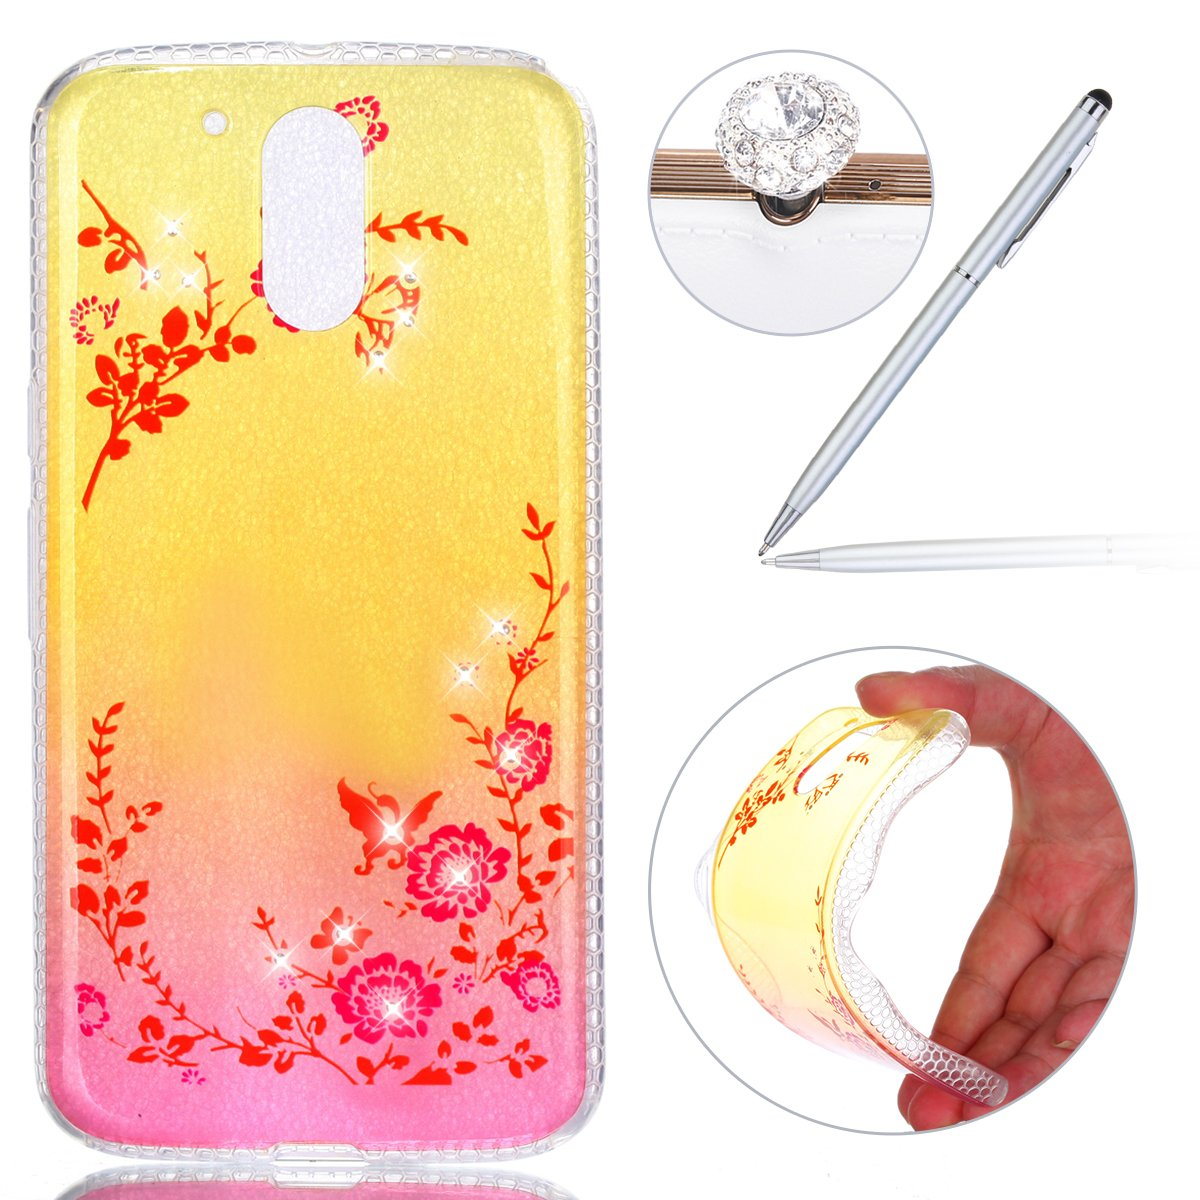 Felfy Motorola Moto G 4th Case, Motorola Moto G4 Clear Case, Novelty [Full-Body 360 Coverage Protective] Transparent Clear Ultra Slim Case with Glitter Cover Soft TPU Silicone Flexible Anti-Scratch Abrasion Resistance Front Back Full Coverage Rubber Cover